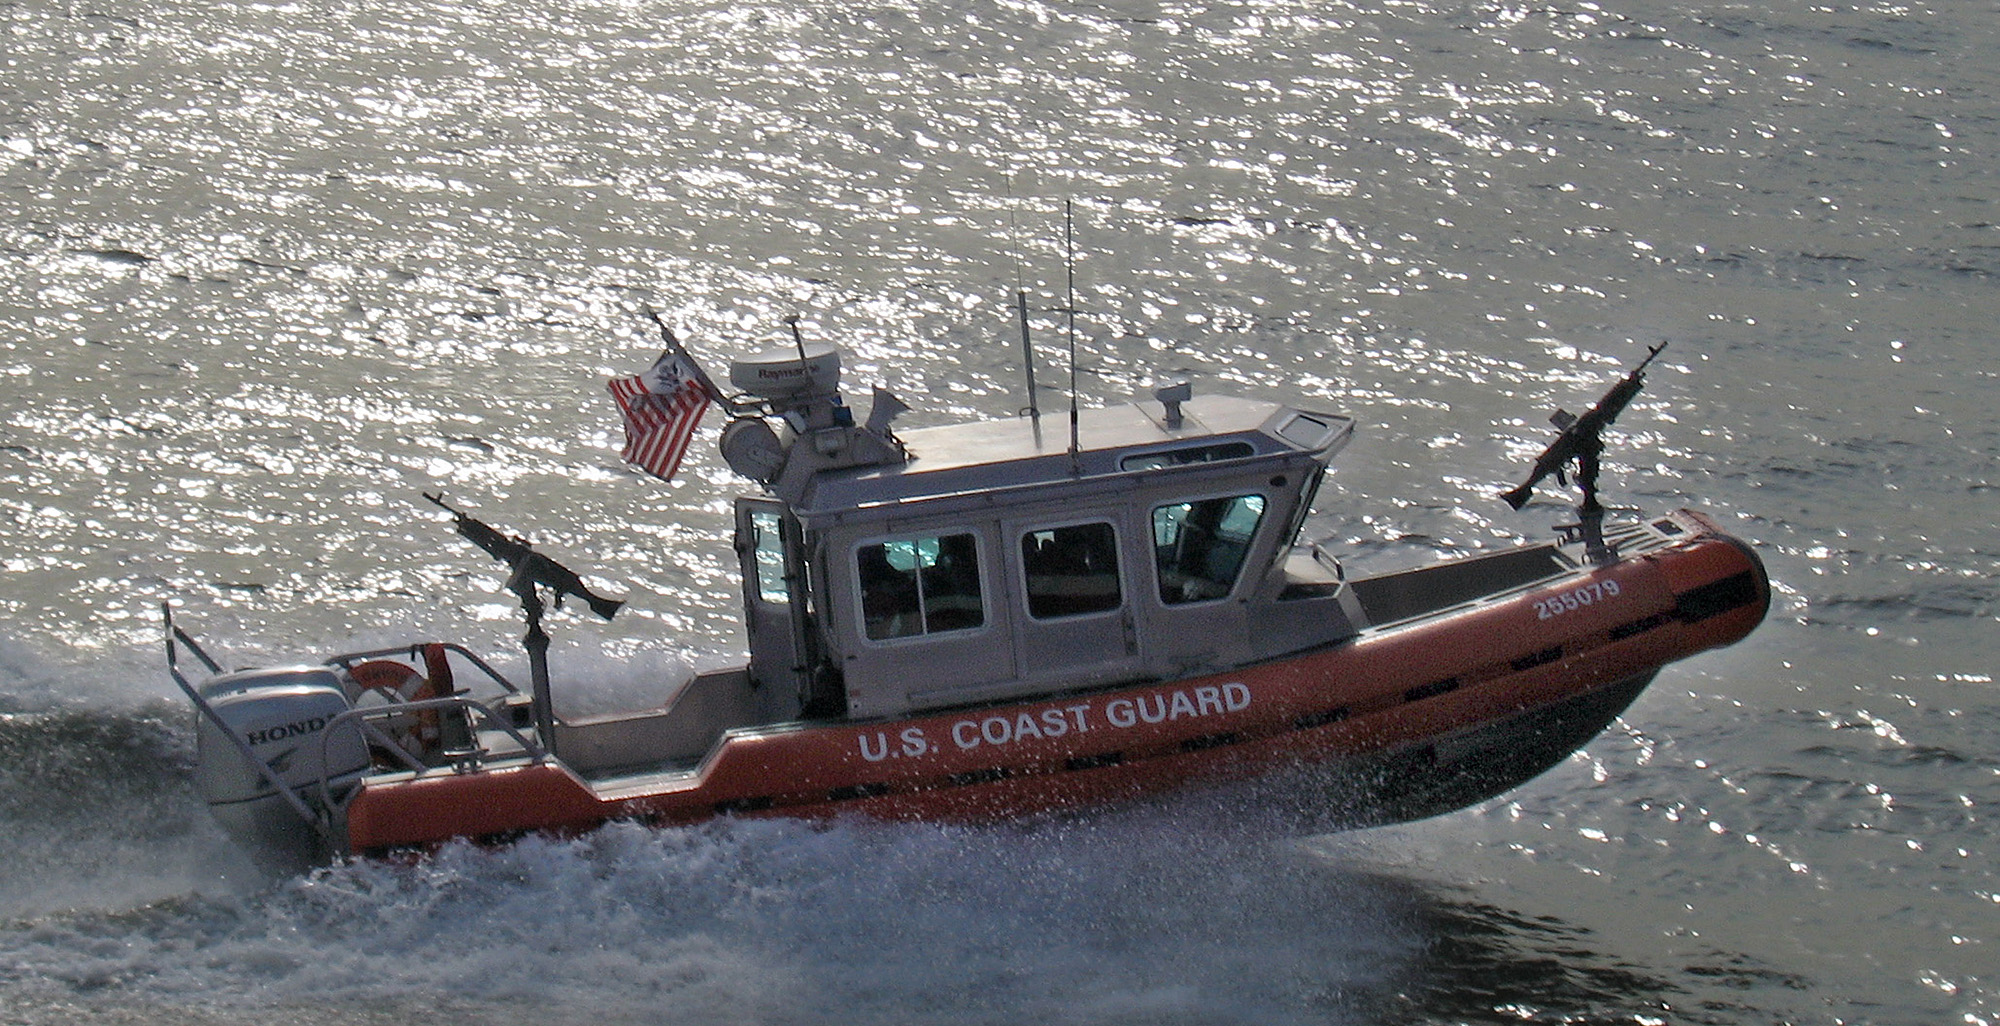 U.S. Coast Guard, New York